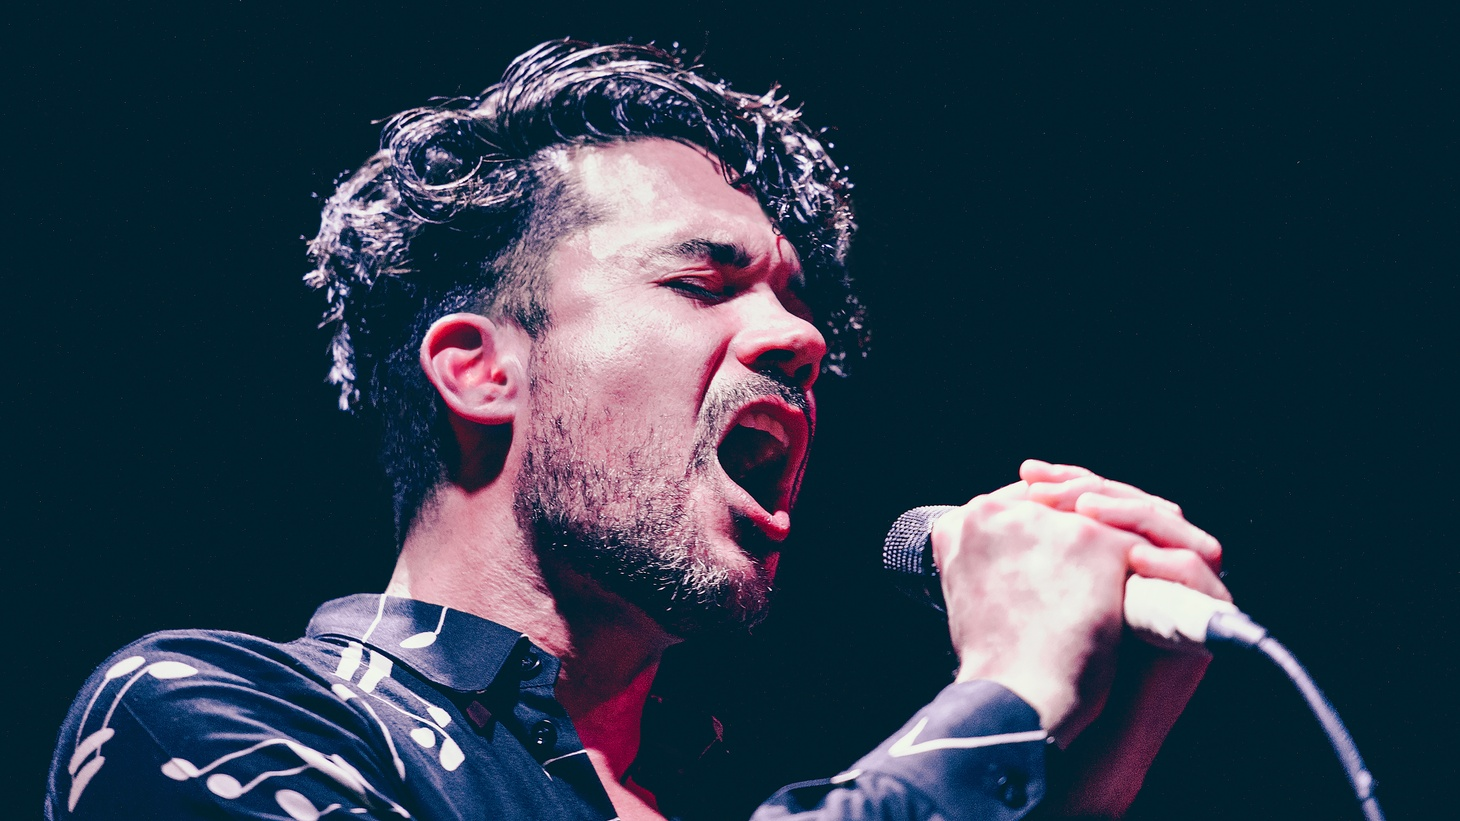 """This shape-shifting DJ and dance-music producer can straddle multiple worlds, yet belongs to none. After six long years and plenty of tinkering, Matthew Dear is back with a shadowy sound on """"Bunny's Dream."""""""